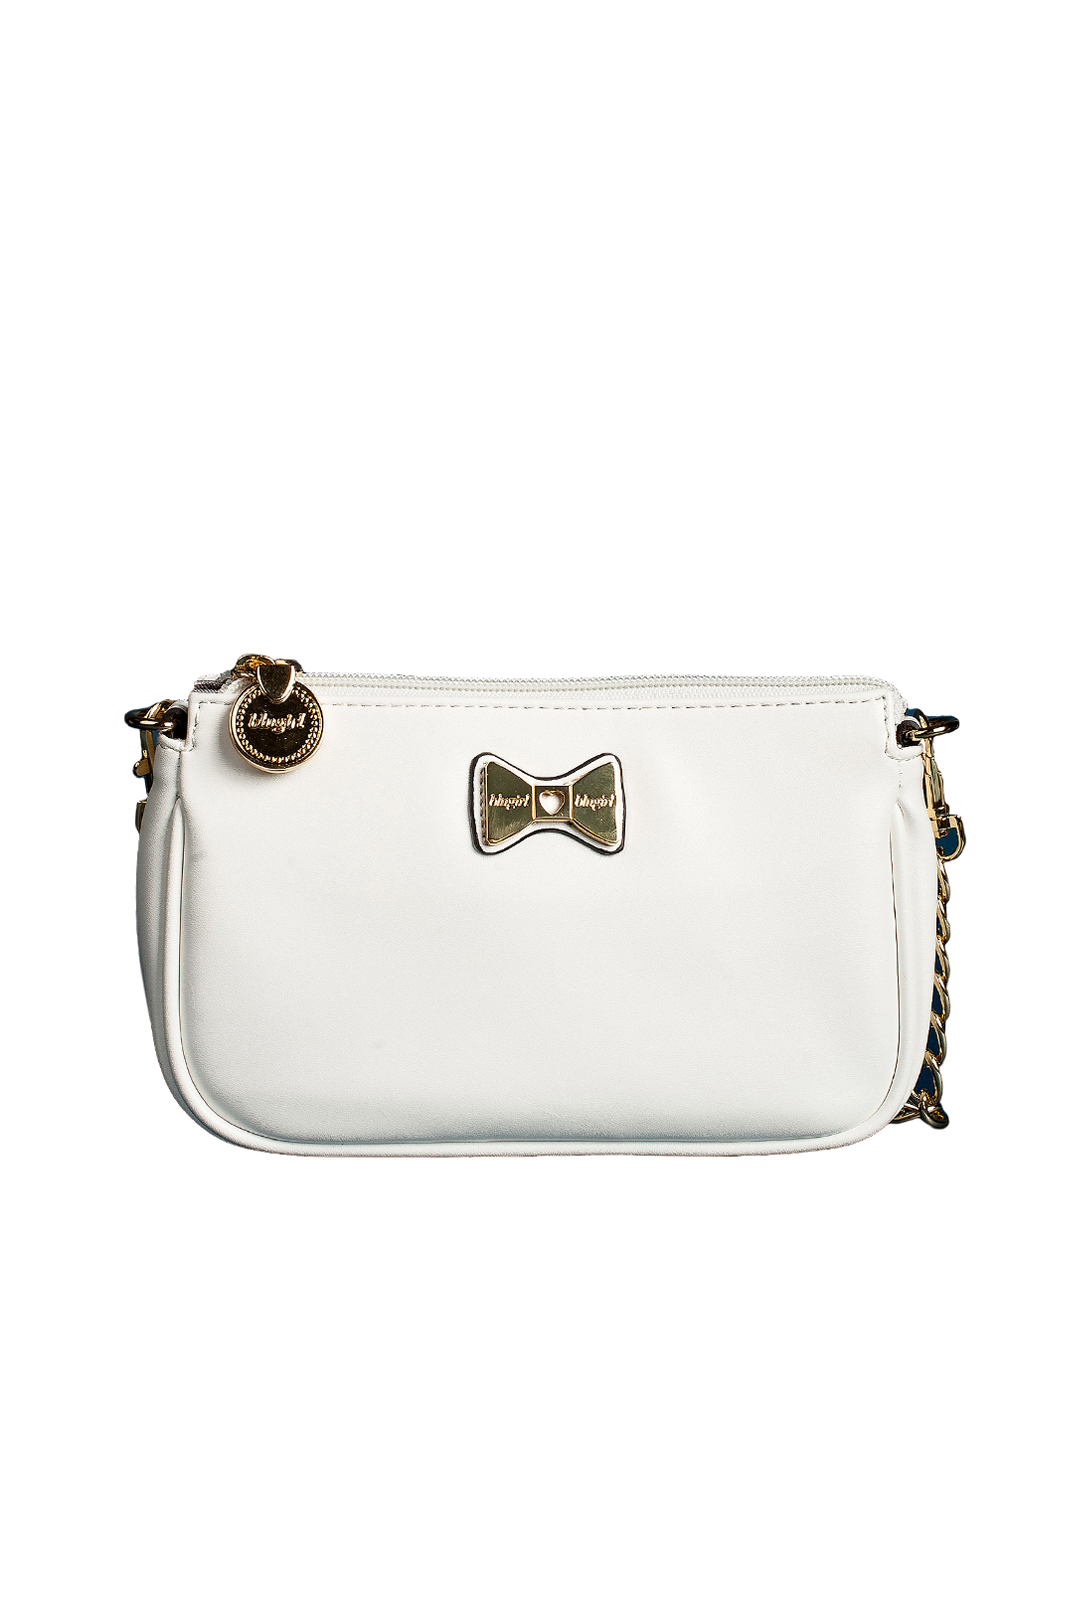 sneakers best supplier discount shop RENT BOUTIQUE / White Leather Purse with Bow